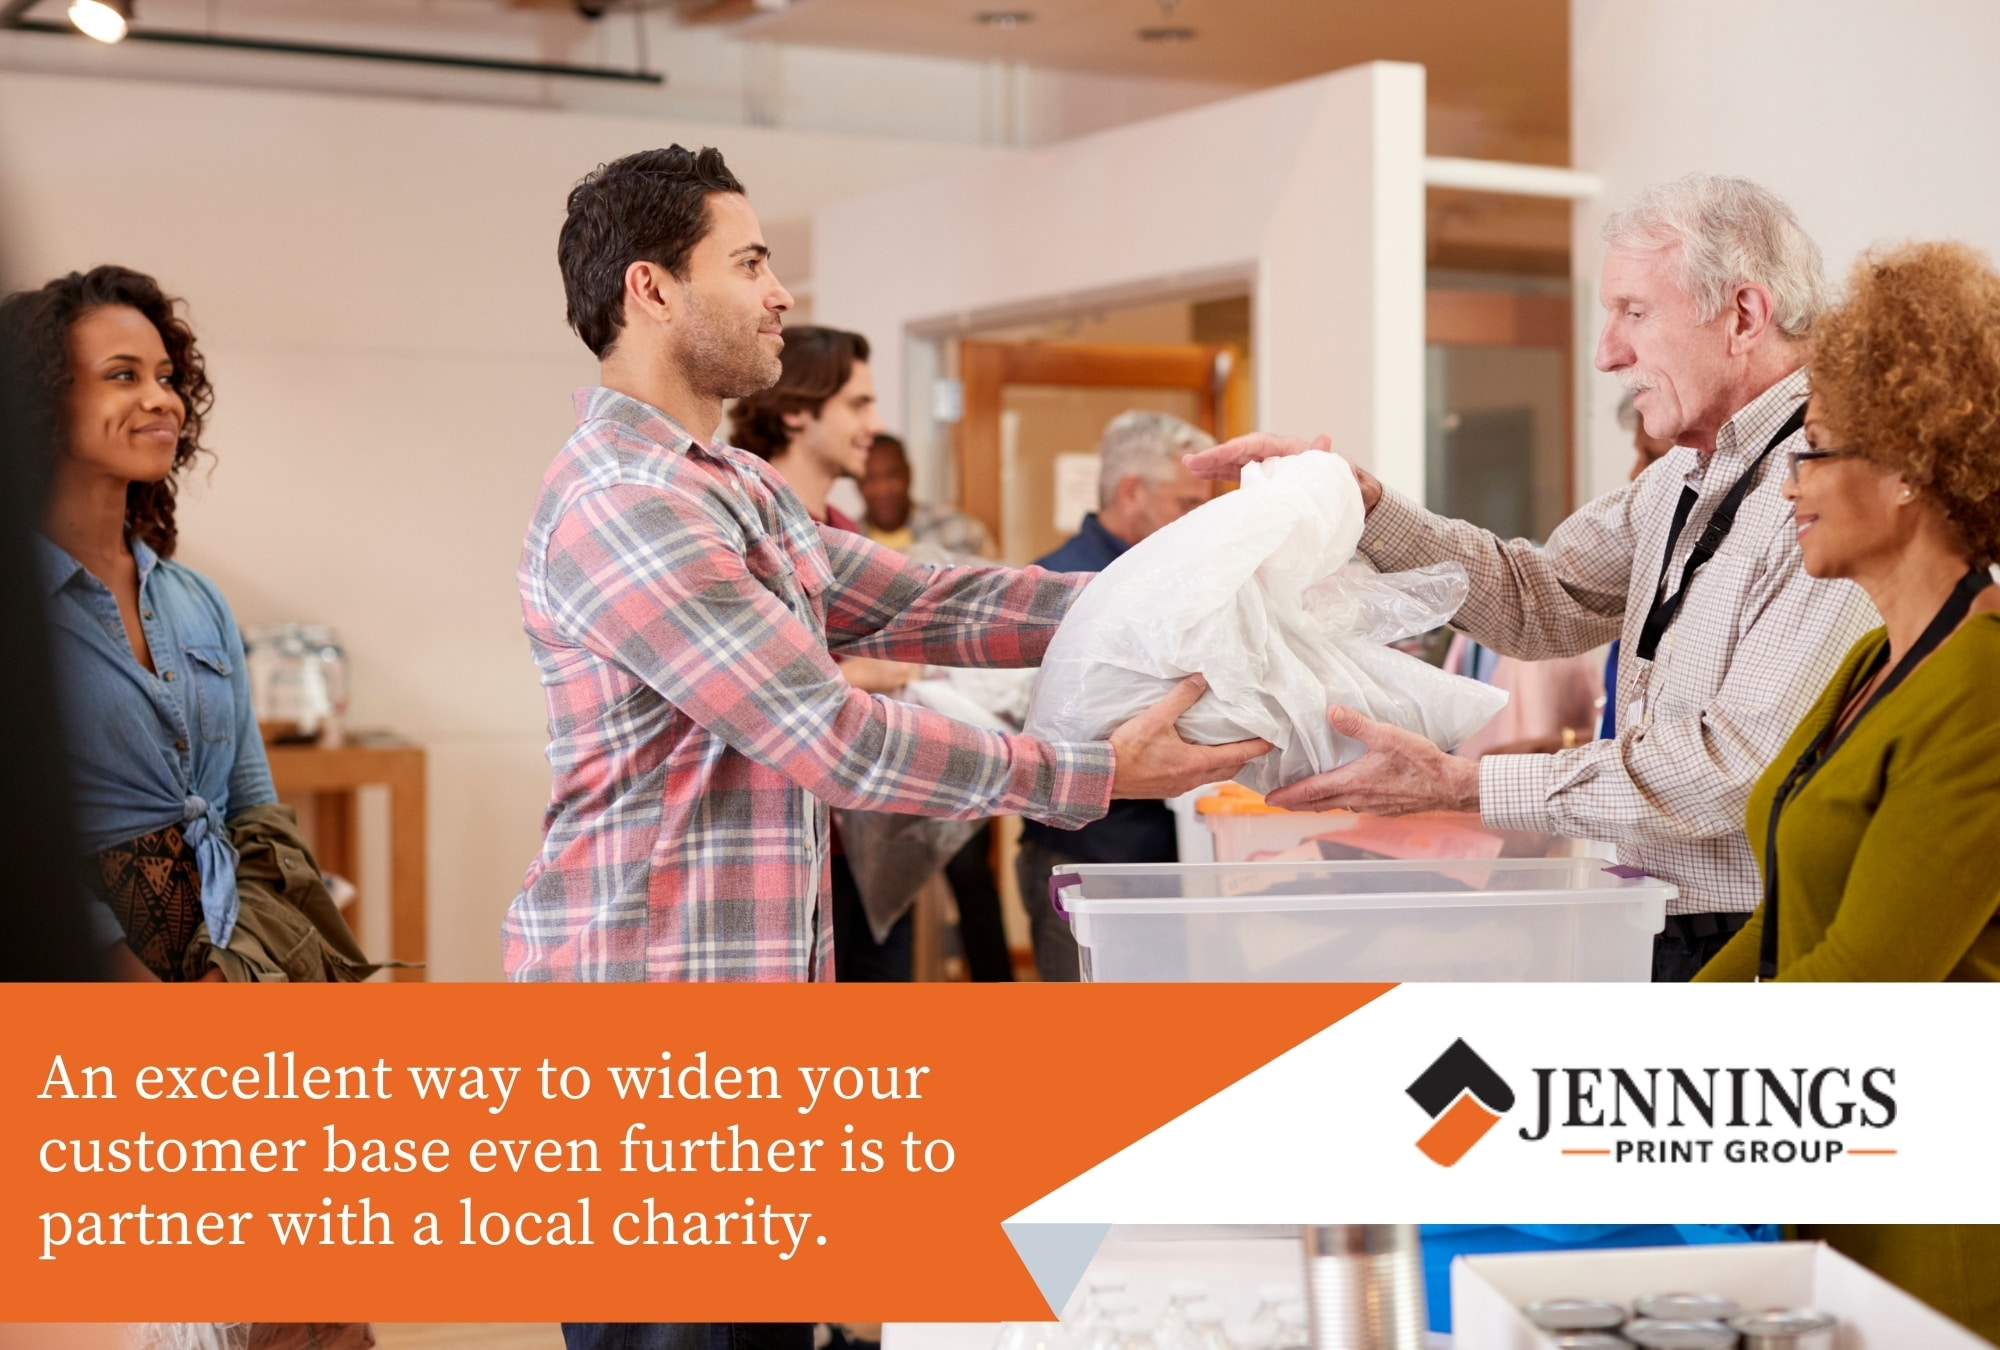 Partner with a local charity